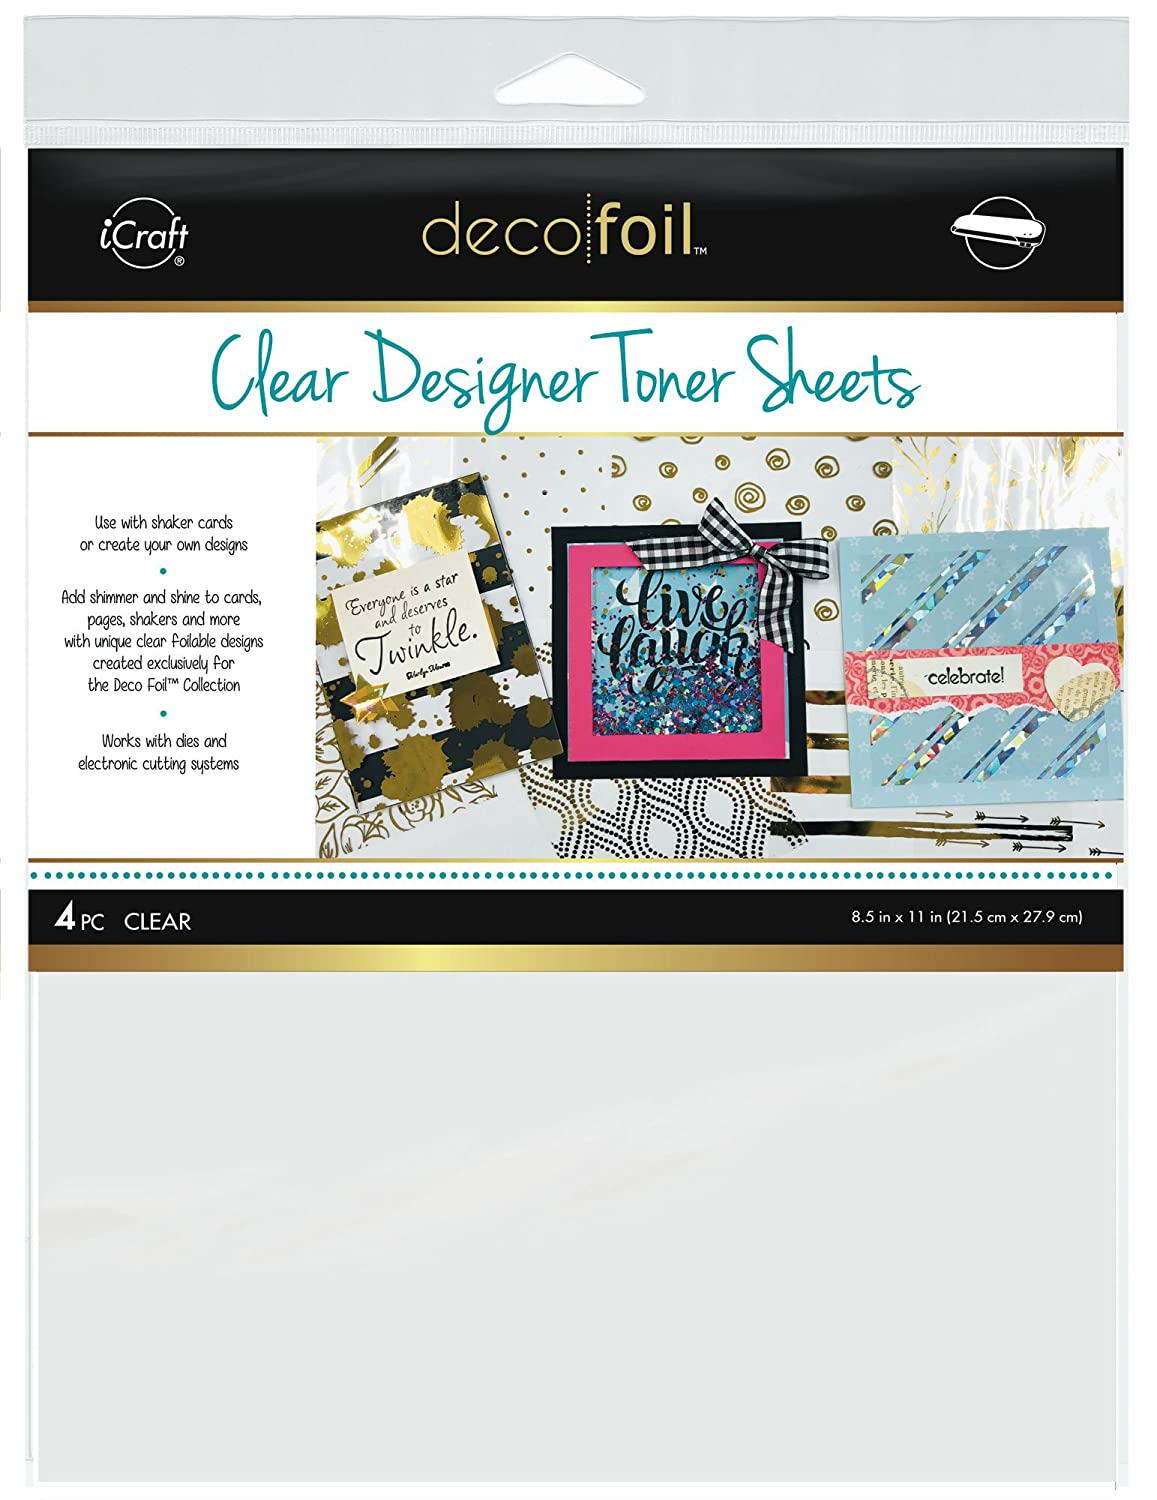 iCraft Deco Foil Clear Designer Toner Sheets 8.5 x 11, 4 Sheets per Pack, Clear Therm O Web Inc. DFTS-5511